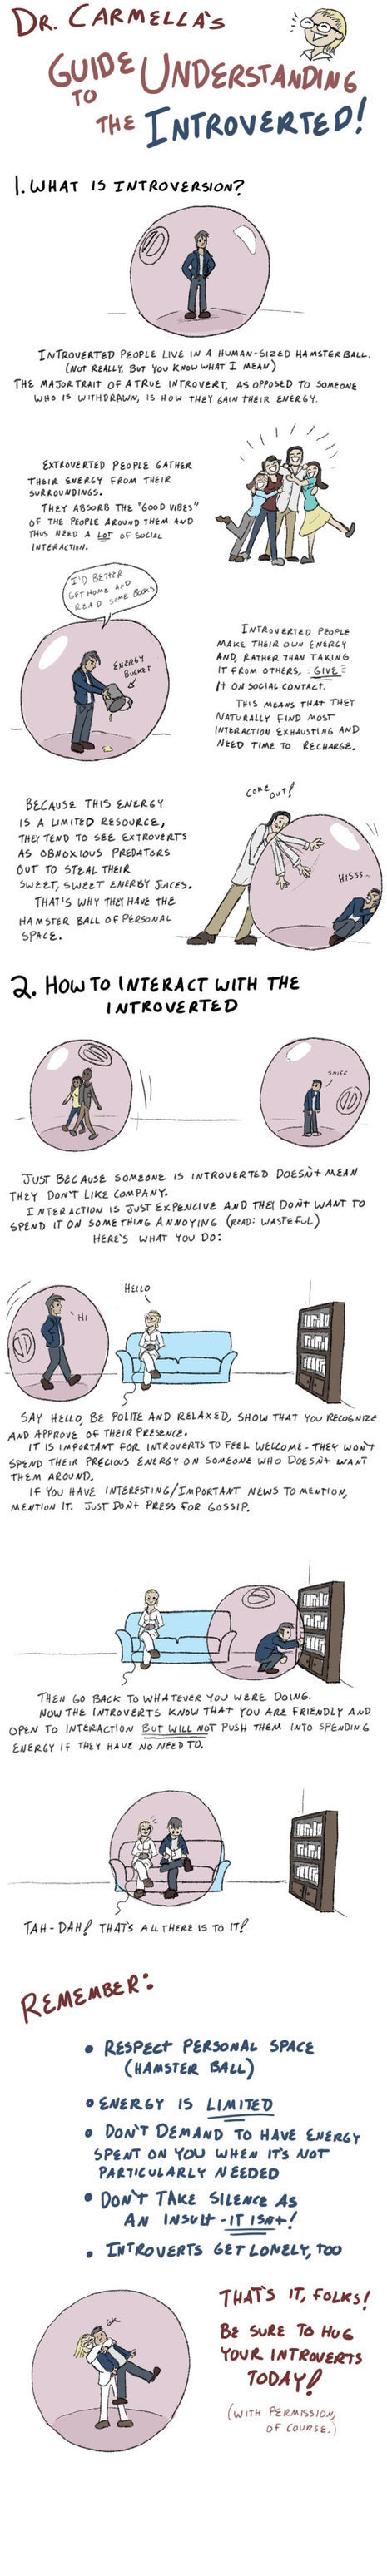 Guide to my boyfriend: Understanding the Introverted.